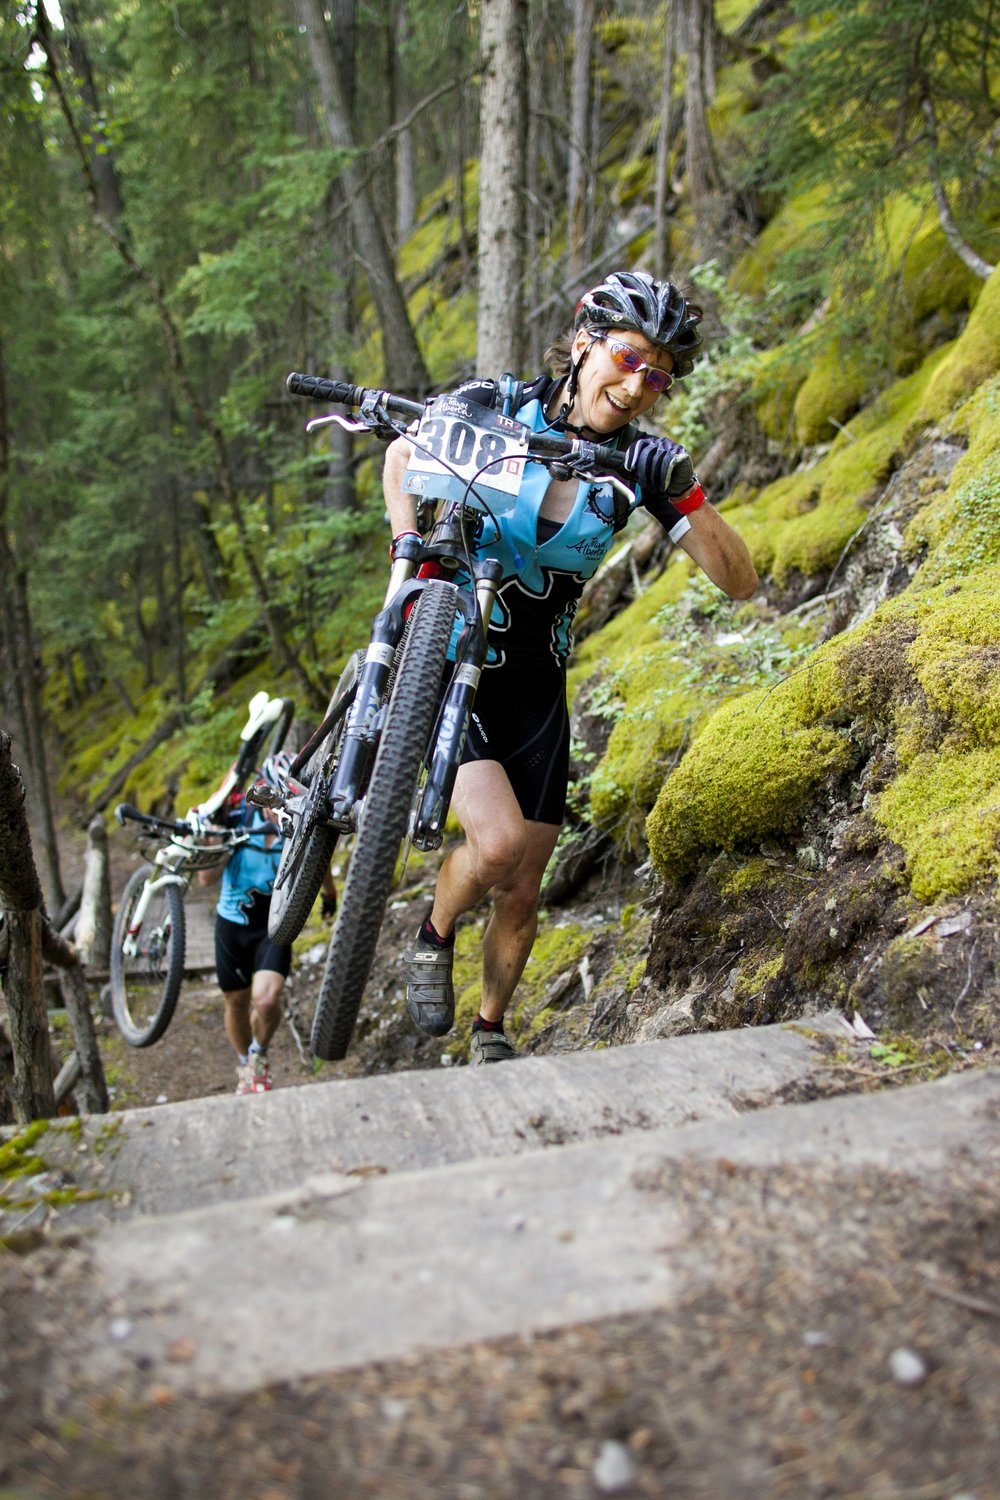 The TransRockies Classic 7 day mountain bike stage race